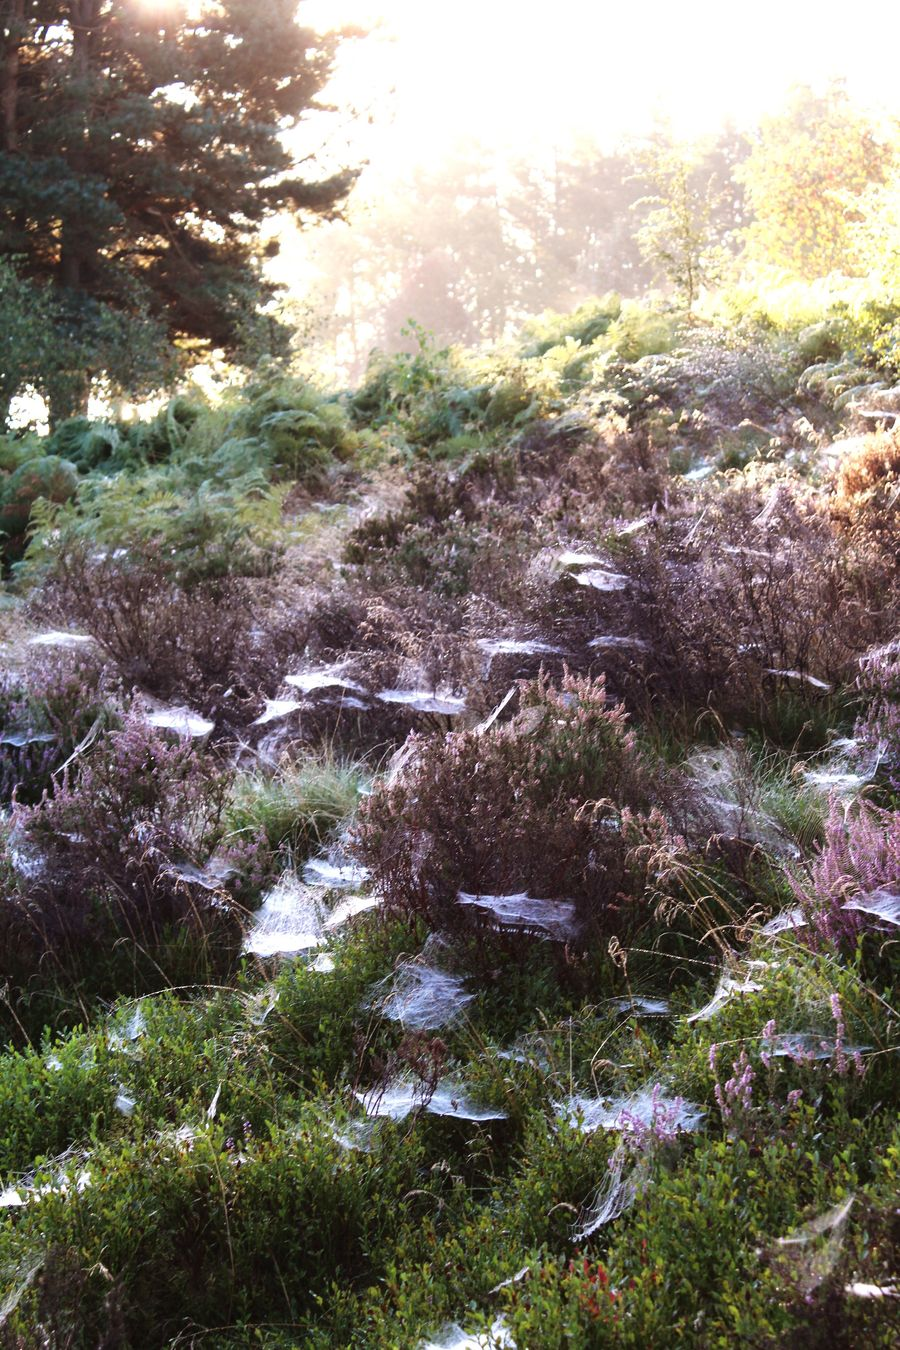 Cobwebs Cobwebs On Heather Beauty In Nature Tranquil Scene Tranquility Plant Remote